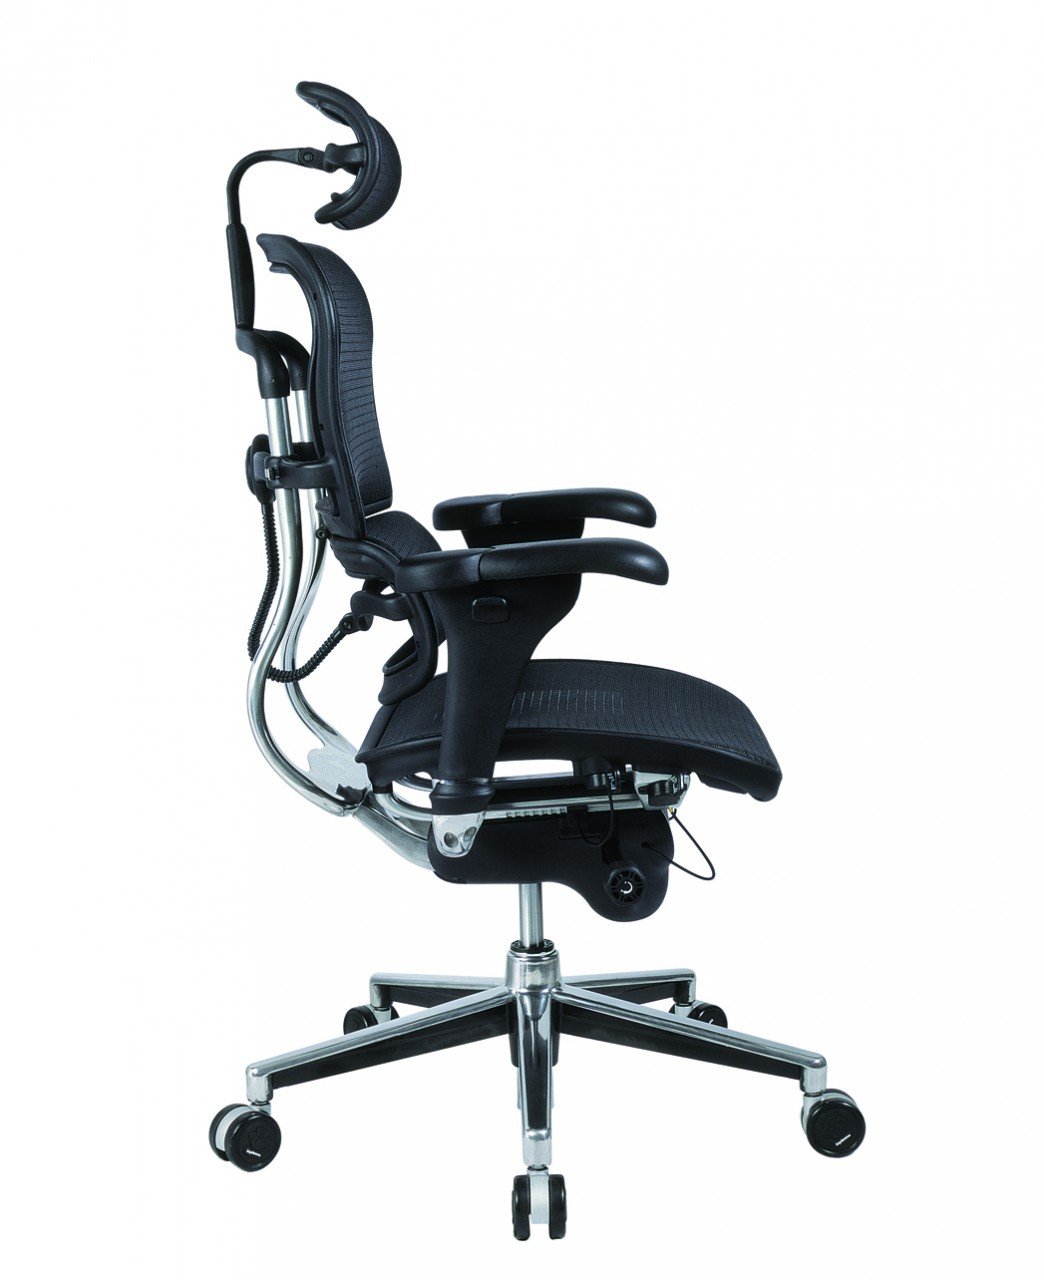 Best computer chair for gaming - 9 Ergohuman